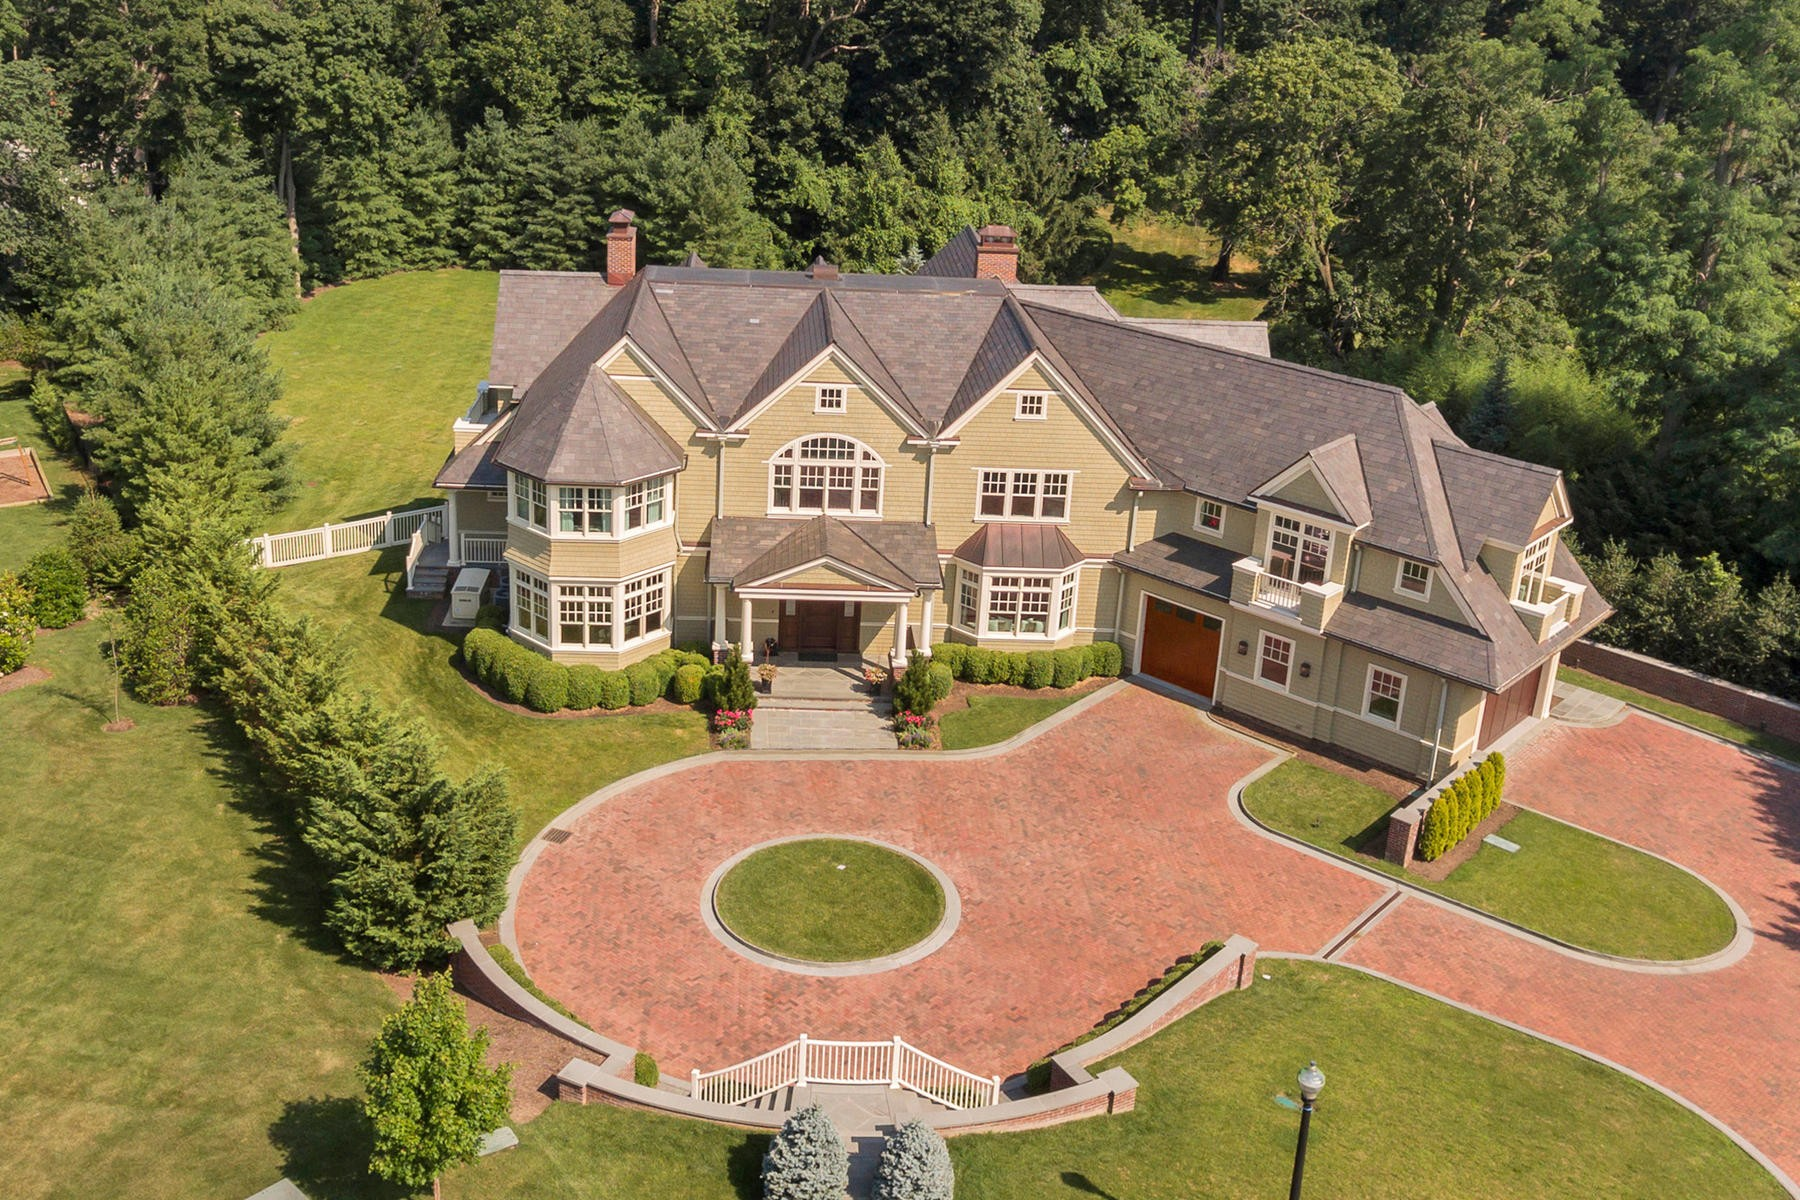 Single Family Home for Sale at Magnificent Custom Estate 11 Sugar Maple Ln Rumson, New Jersey 07760 United States